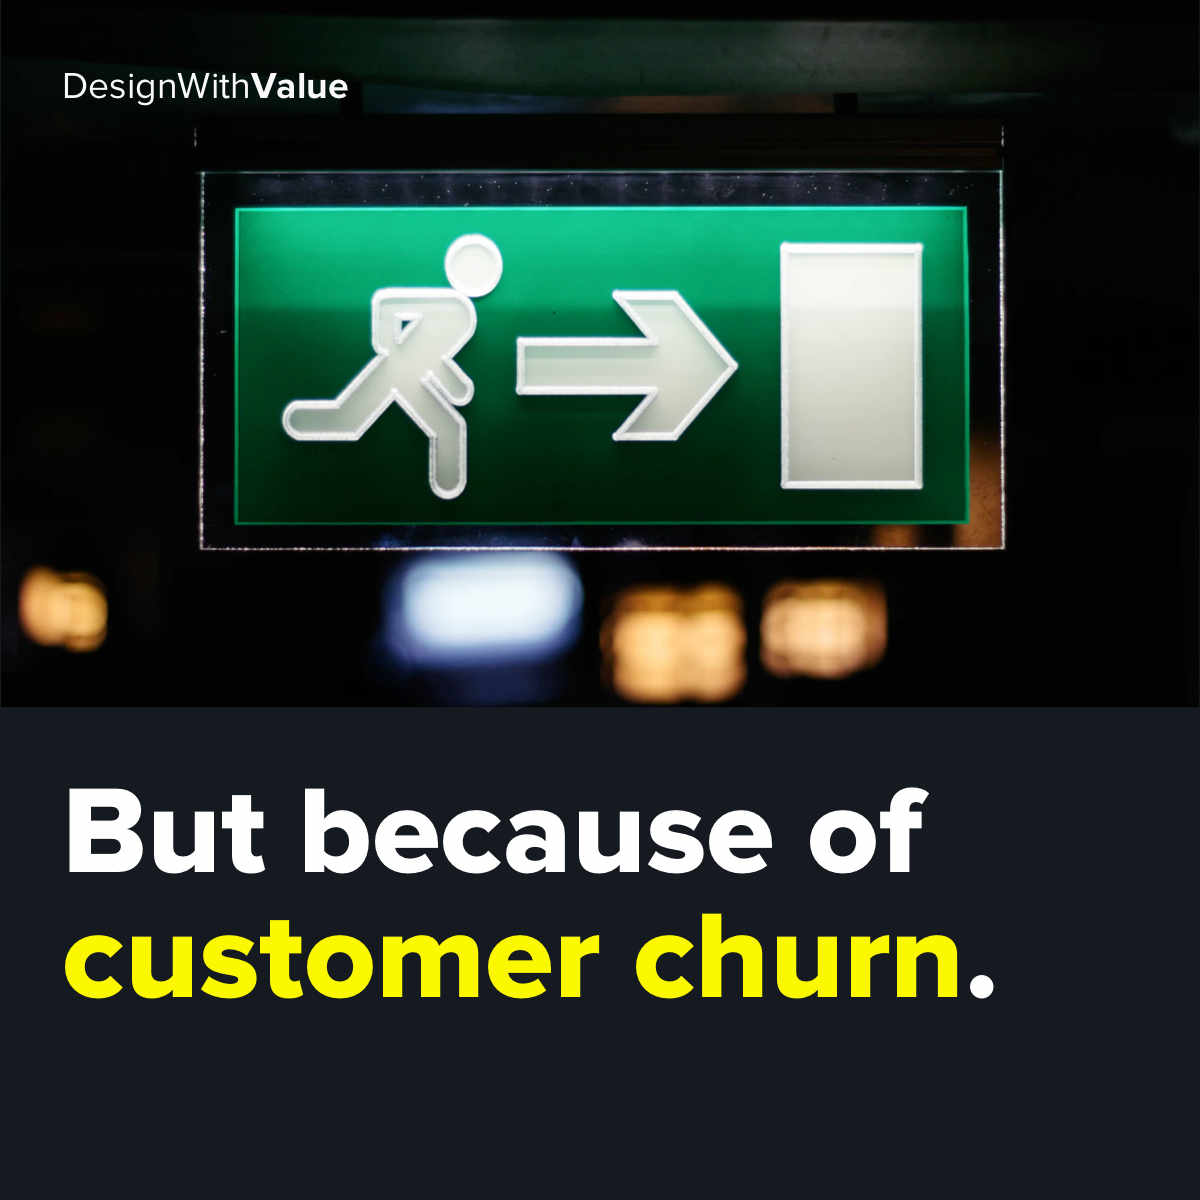 But because of customer churn.